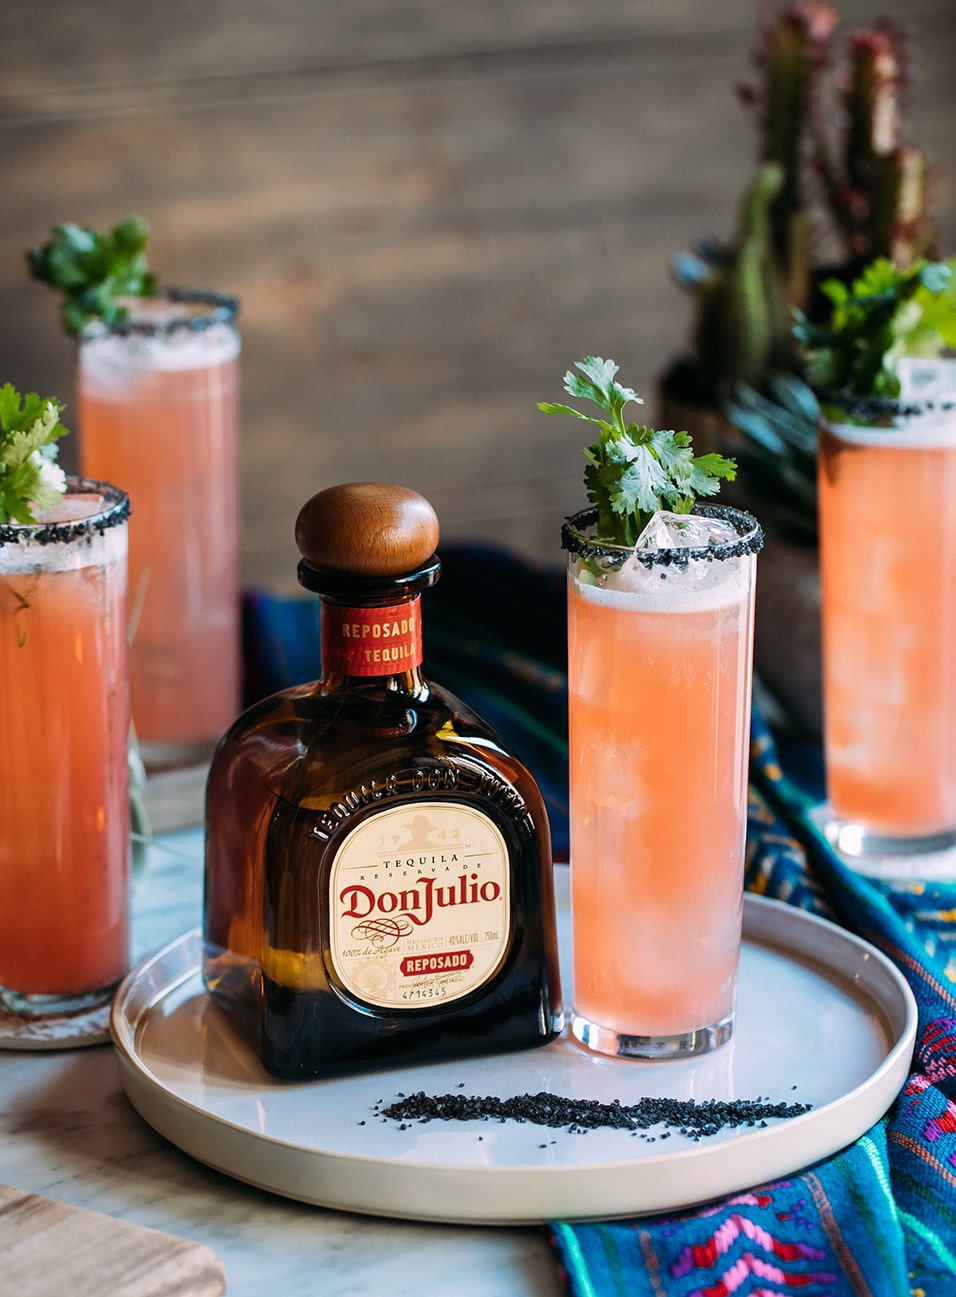 Glass of Cilantro Paloma made with Don Julio Reposado Tequila